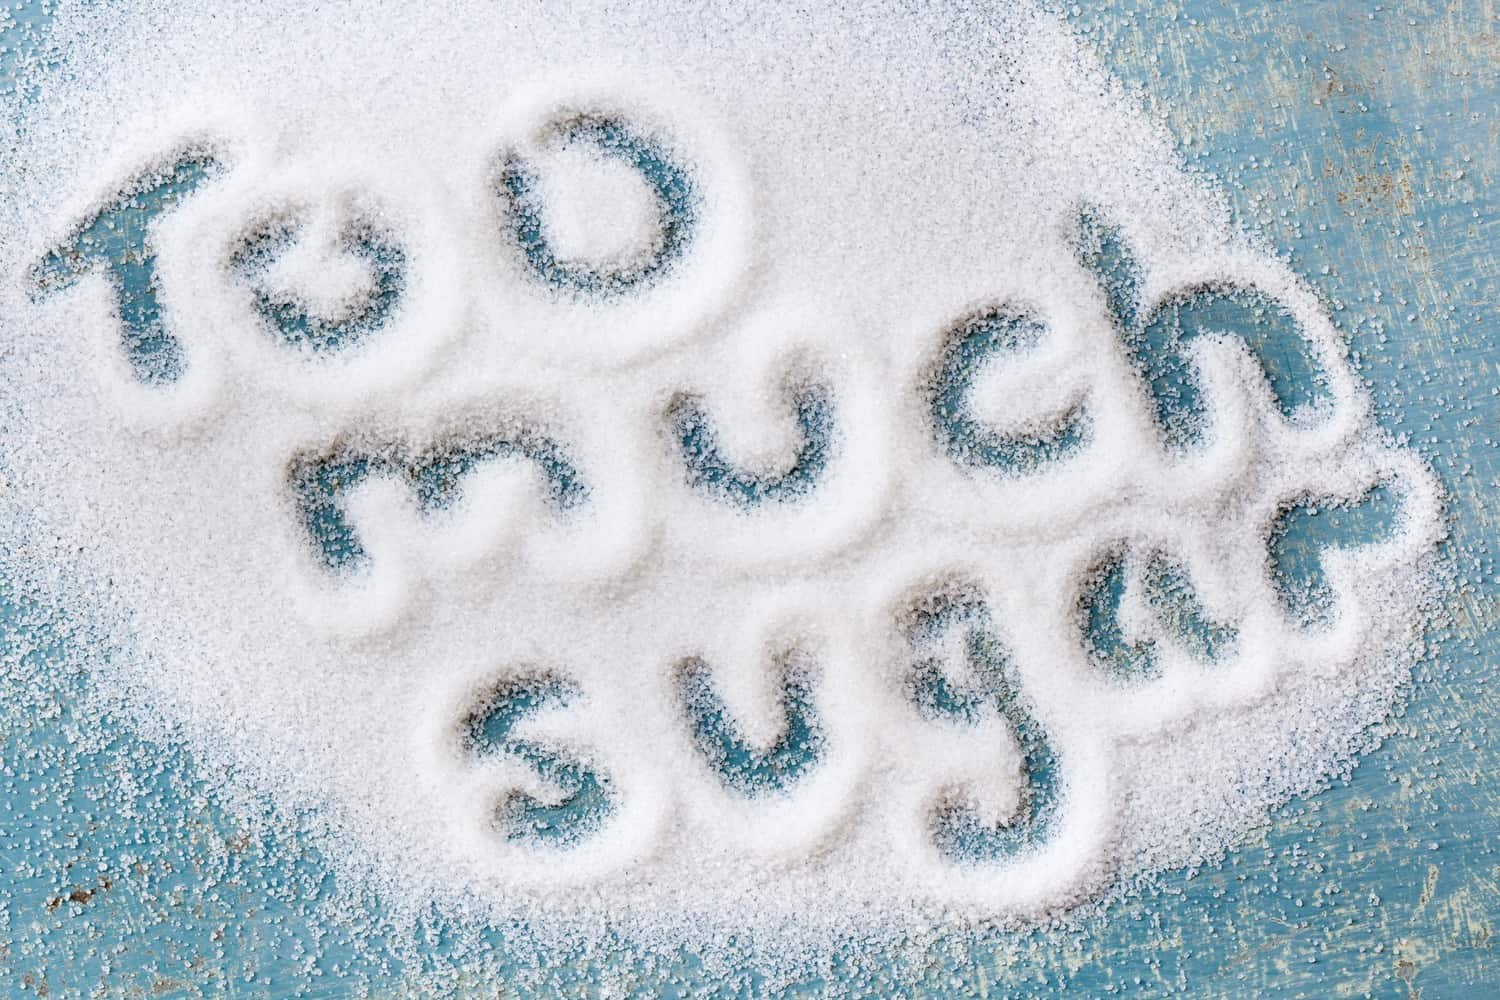 The phrase 'Too much sugar' written into sugar.